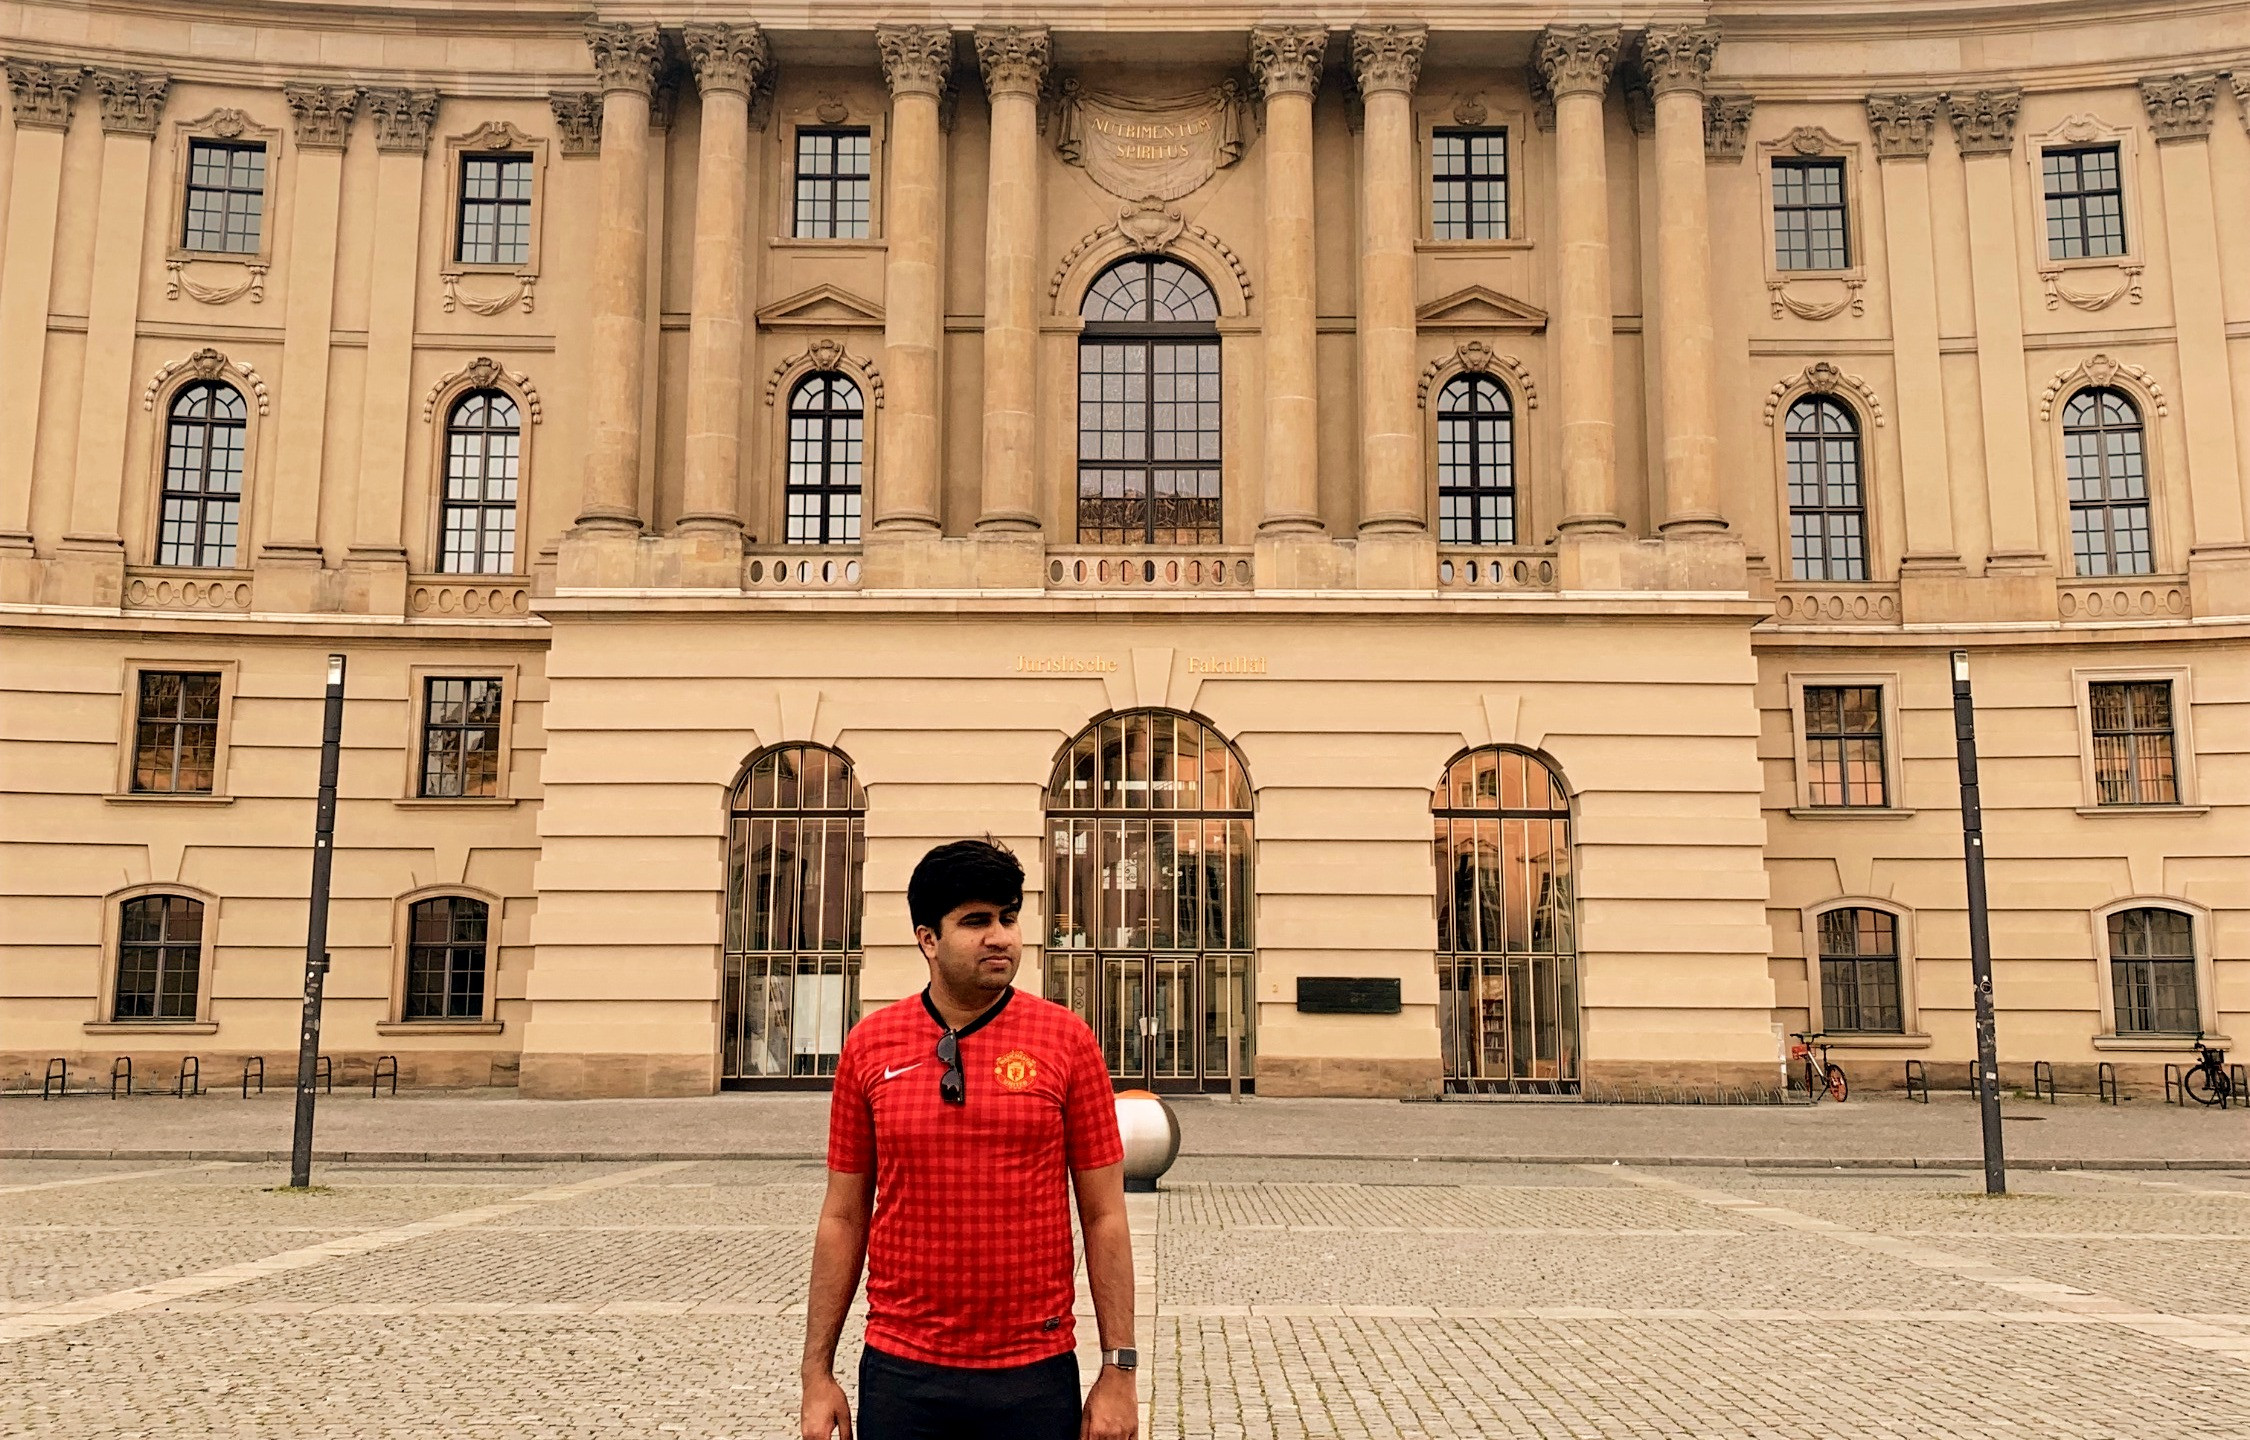 At Humboldt University